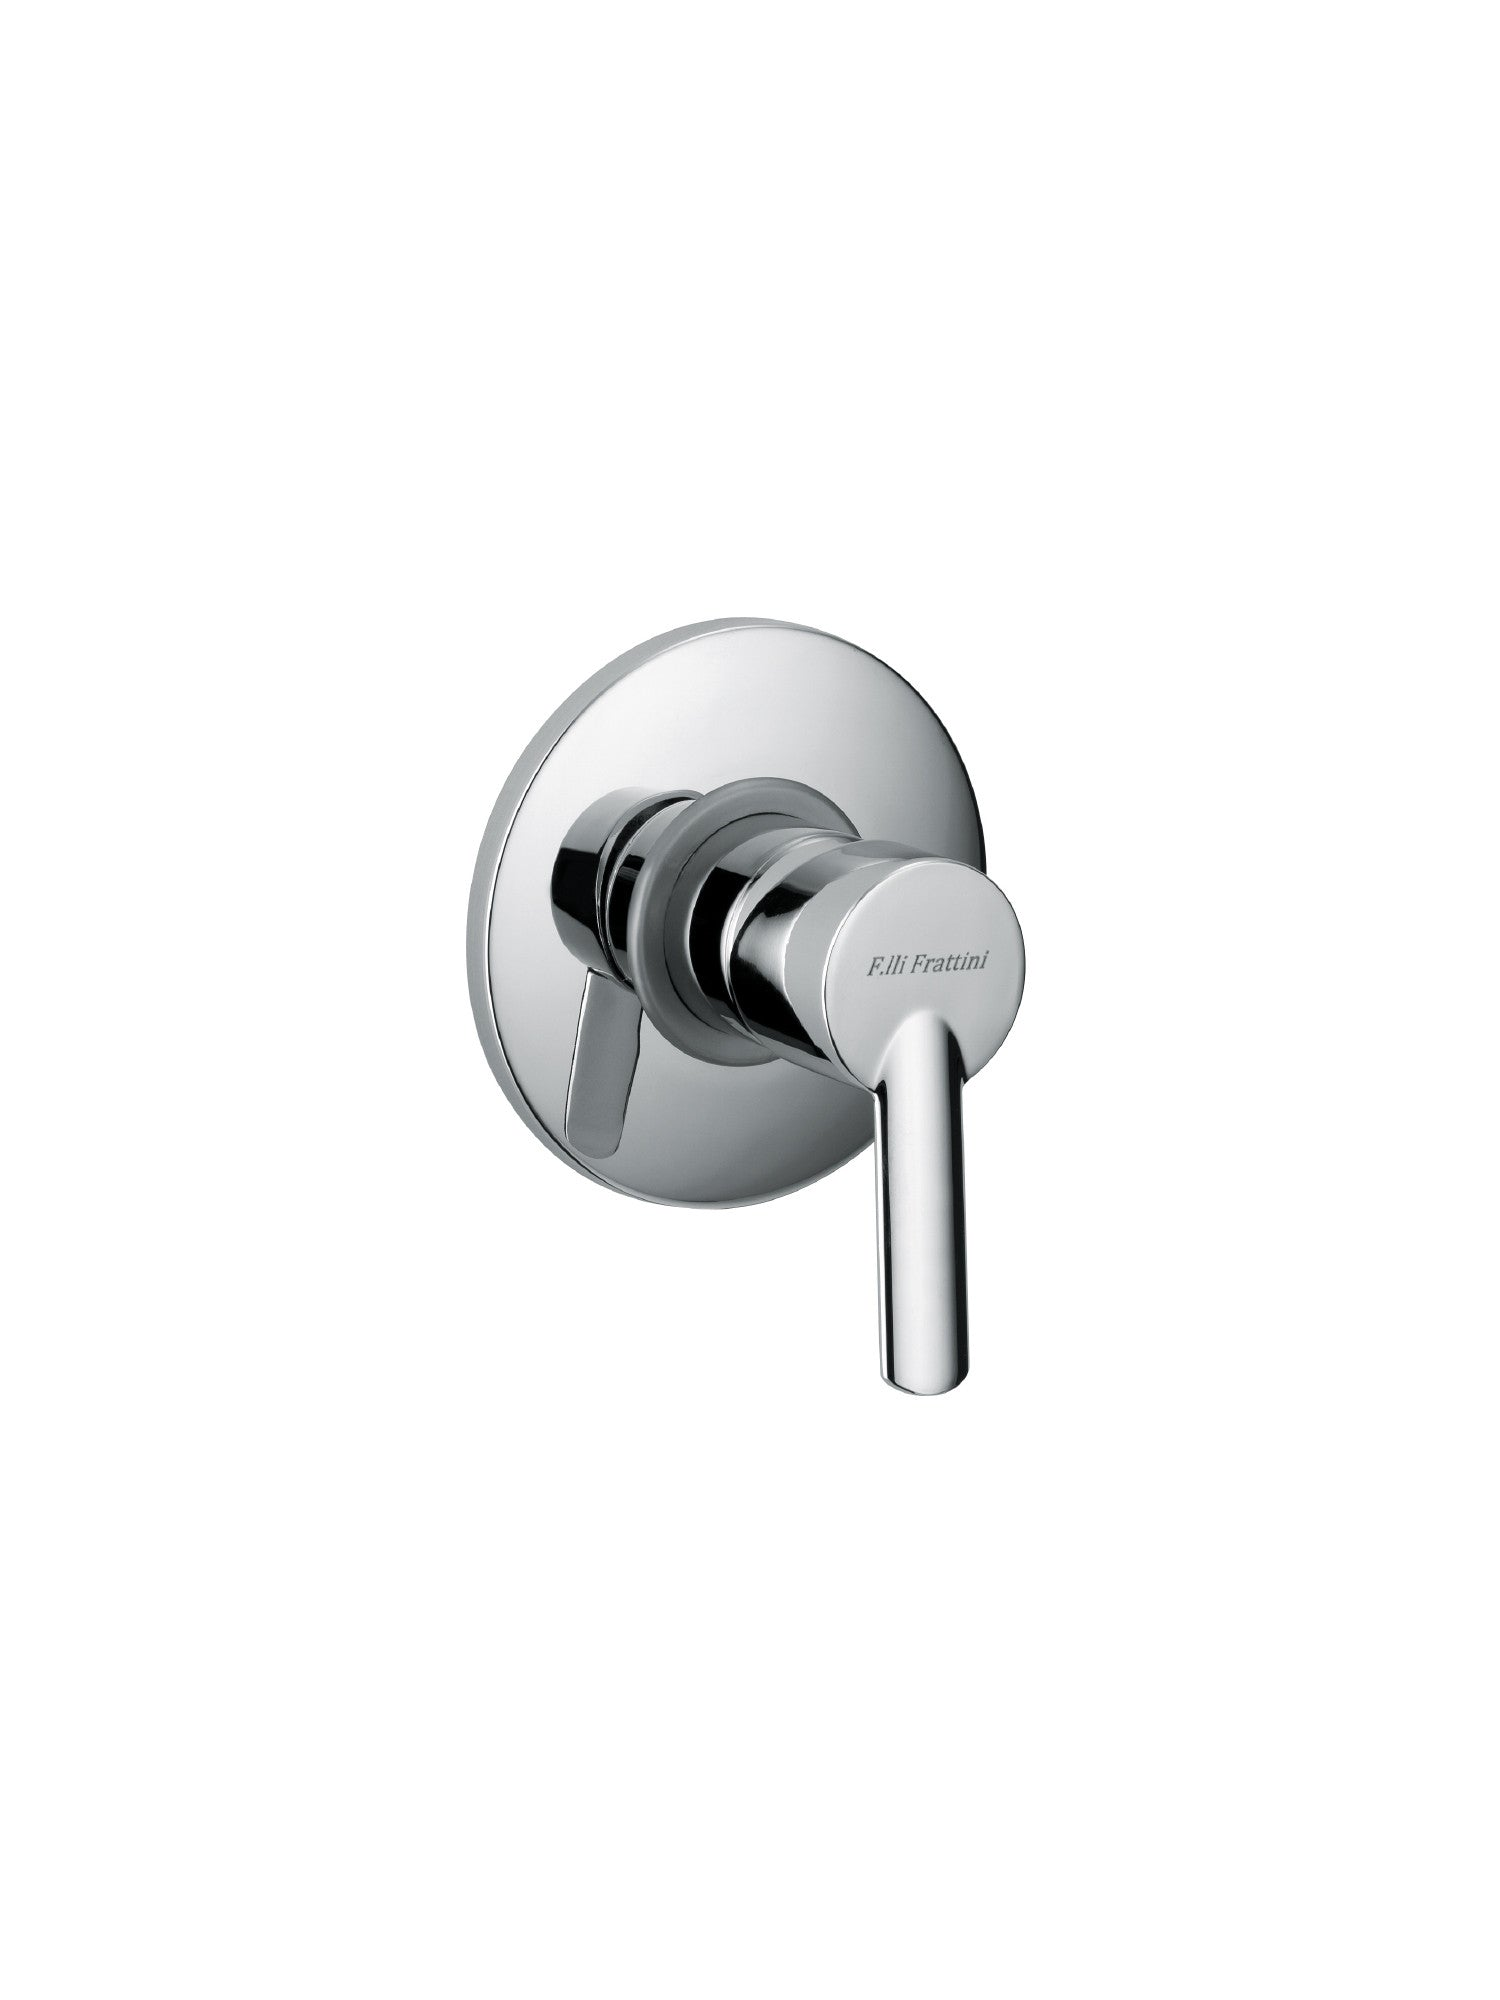 Mito Concealed Shower Mixer #81016